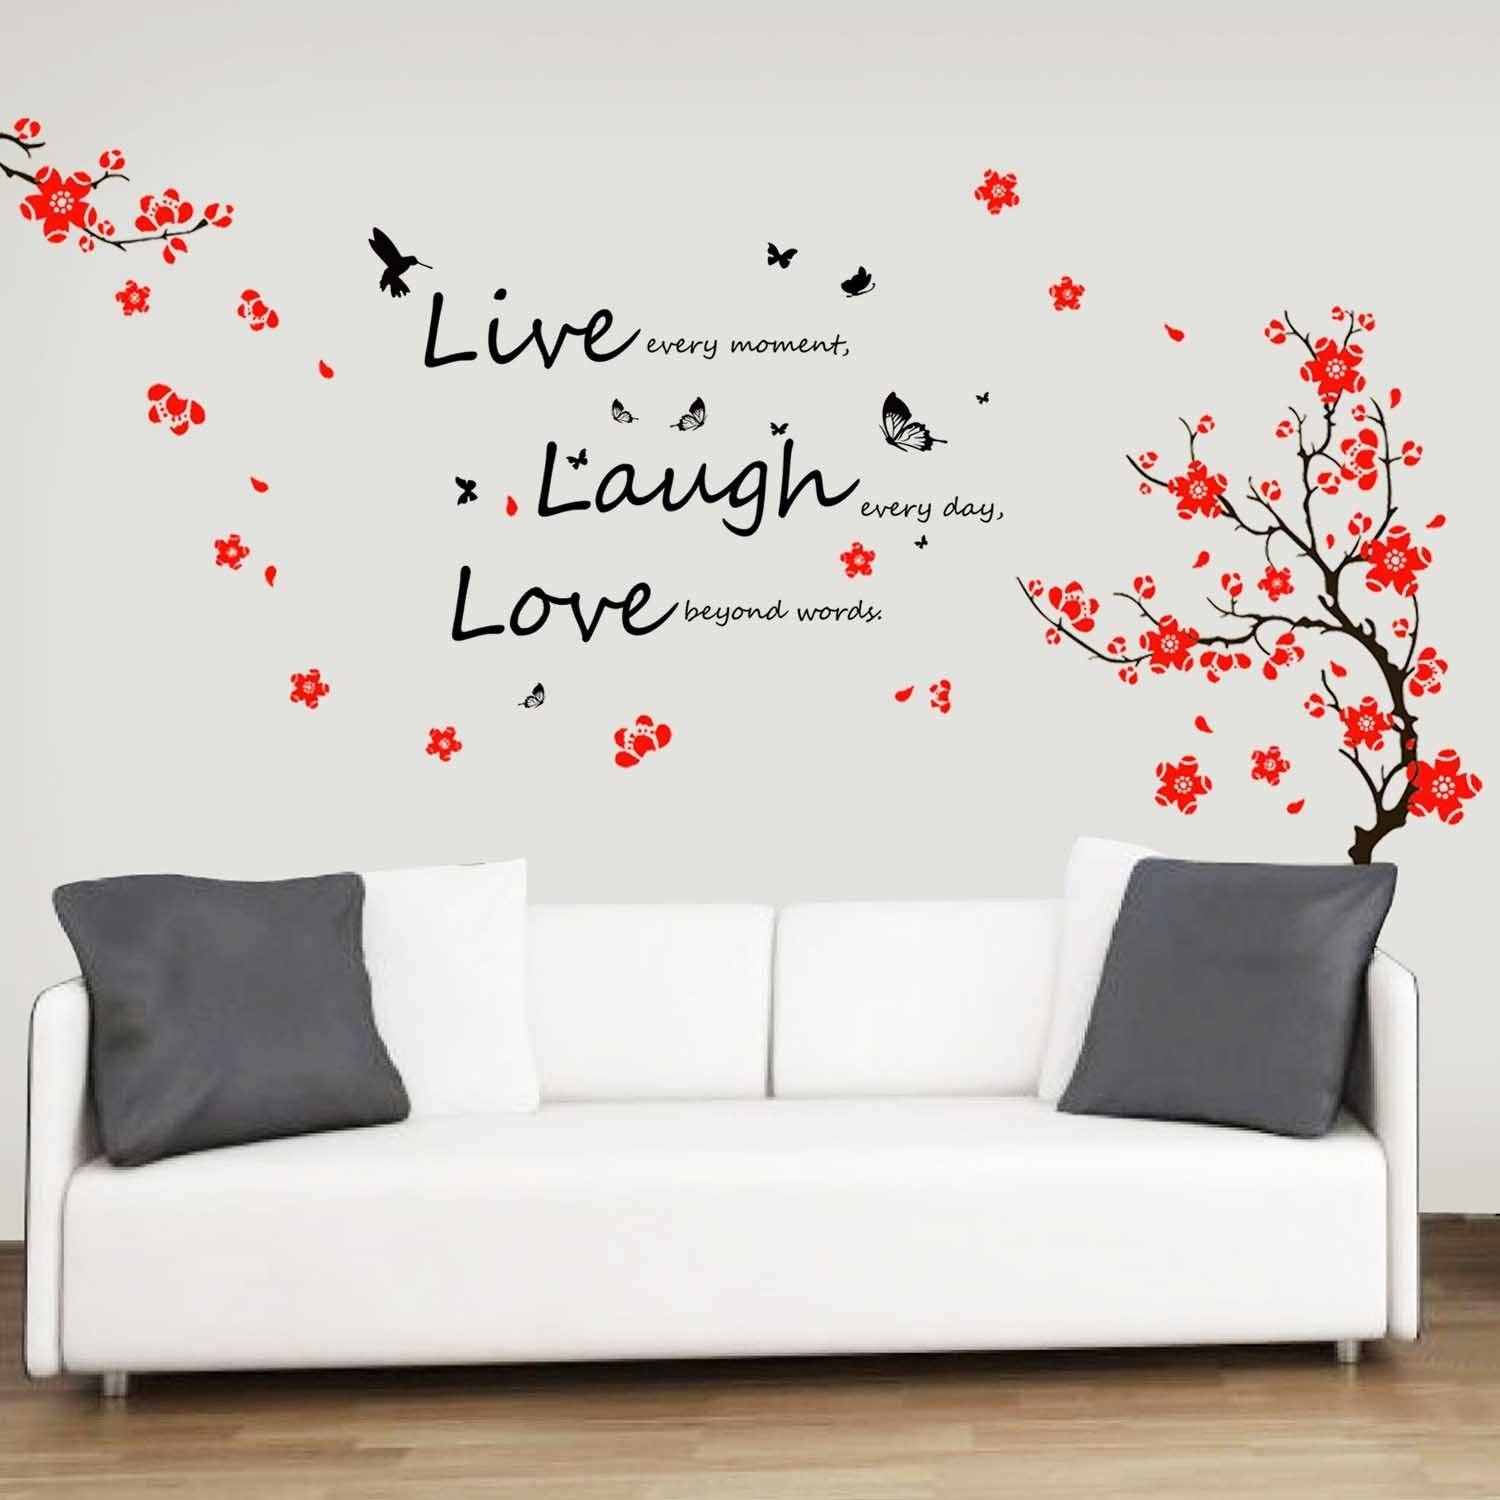 Decorations: Beautiful Bedroom Wall Decor 3D Bedroom Room Wall With Newest Decorative 3D Wall Art Stickers (View 13 of 20)